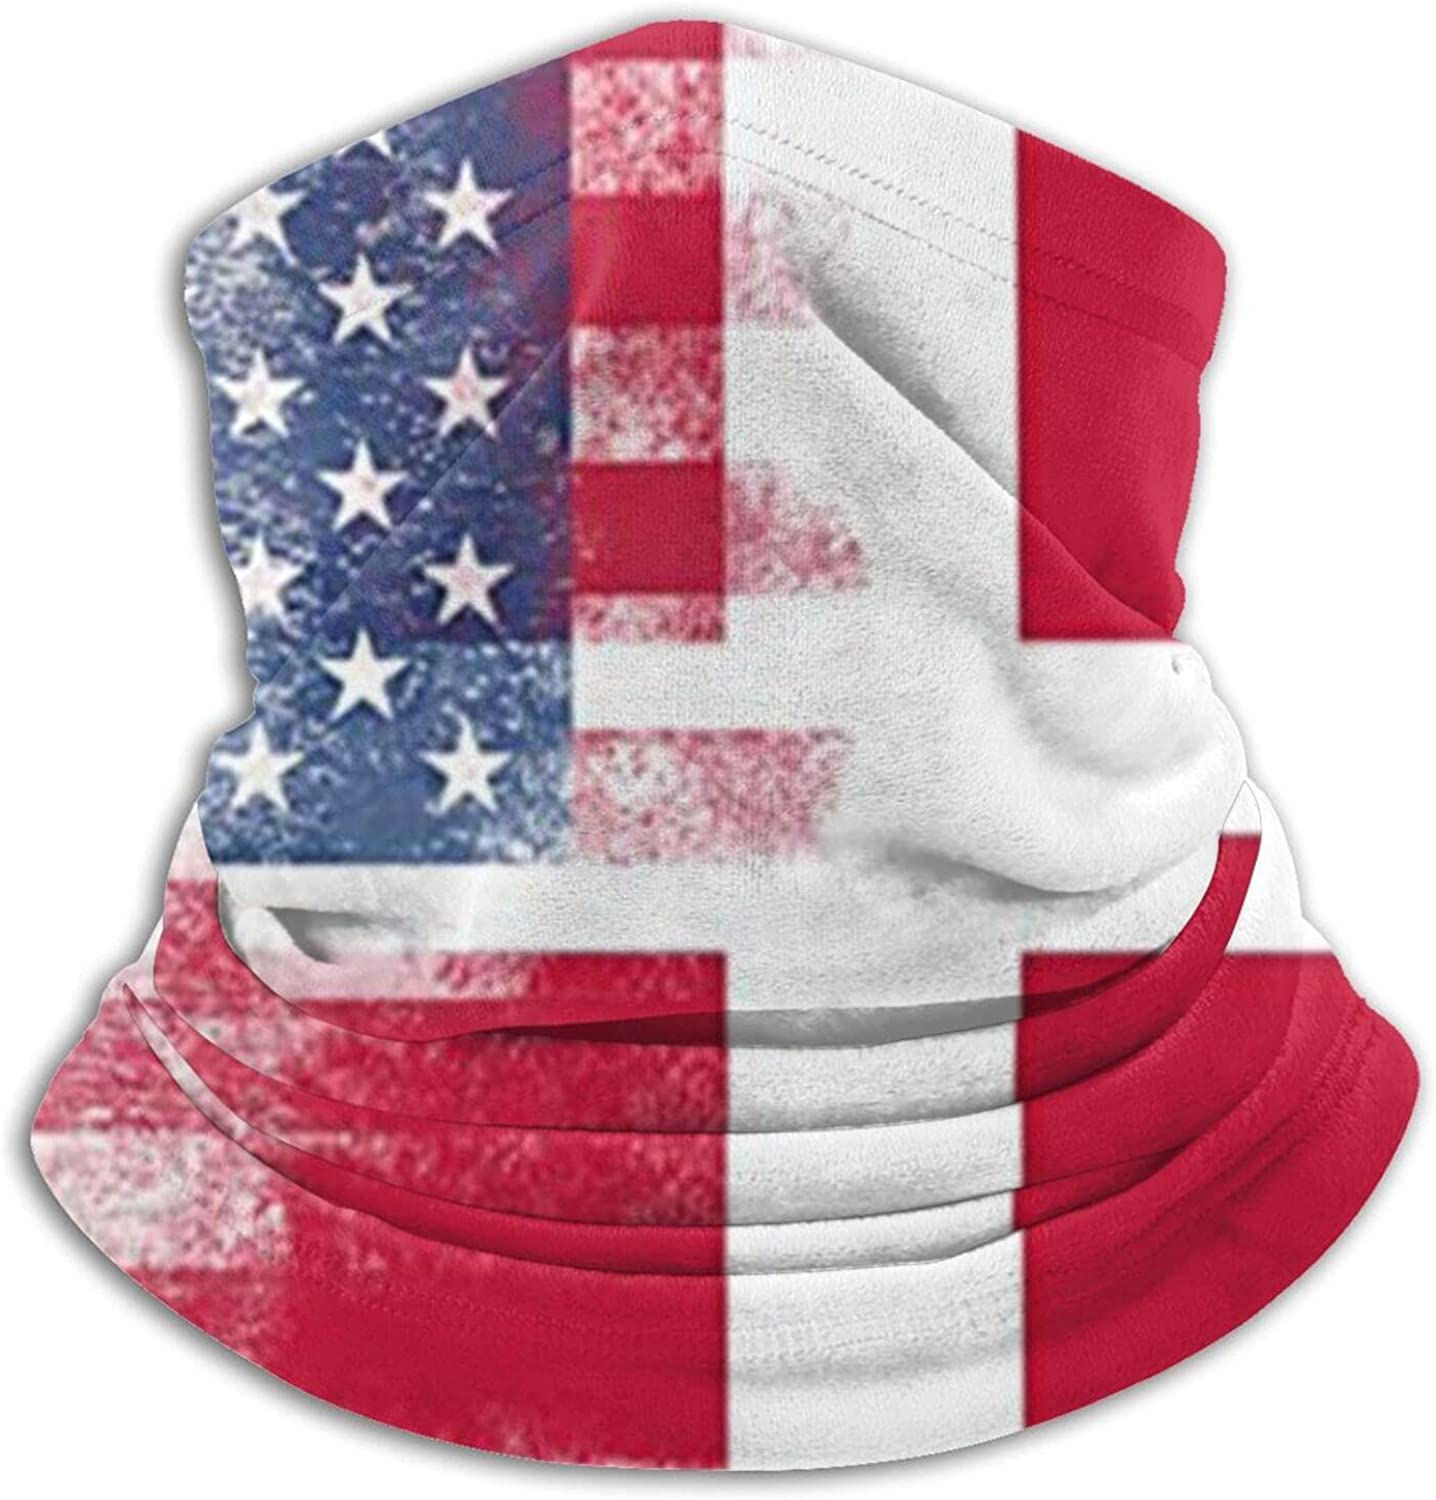 Vintage danish american flag unisex winter neck gaiter face cover mask, windproof balaclava scarf for fishing, running & hiking